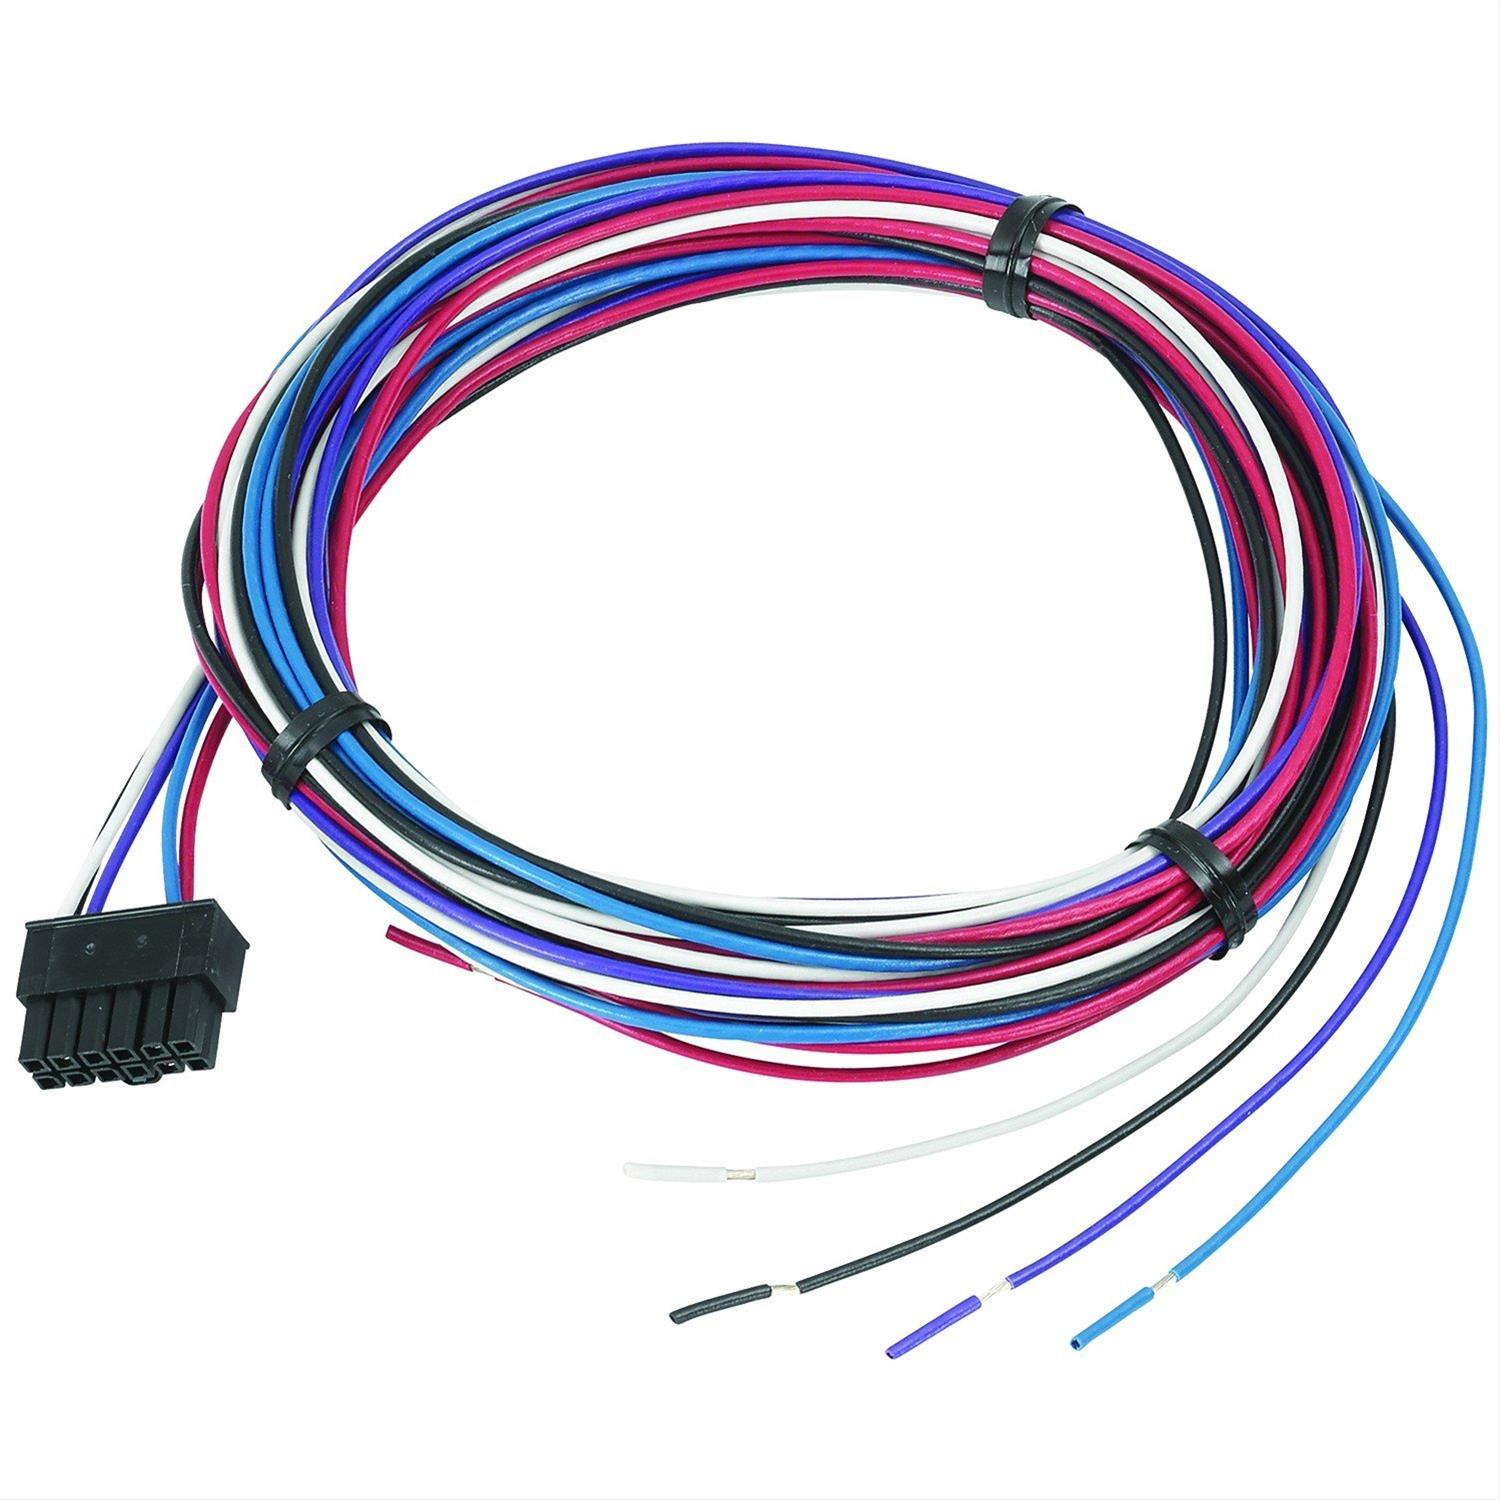 hight resolution of autometer spek pro voltmeter gauge wiring harnesses p19372 free shipping on orders over 99 at summit racing